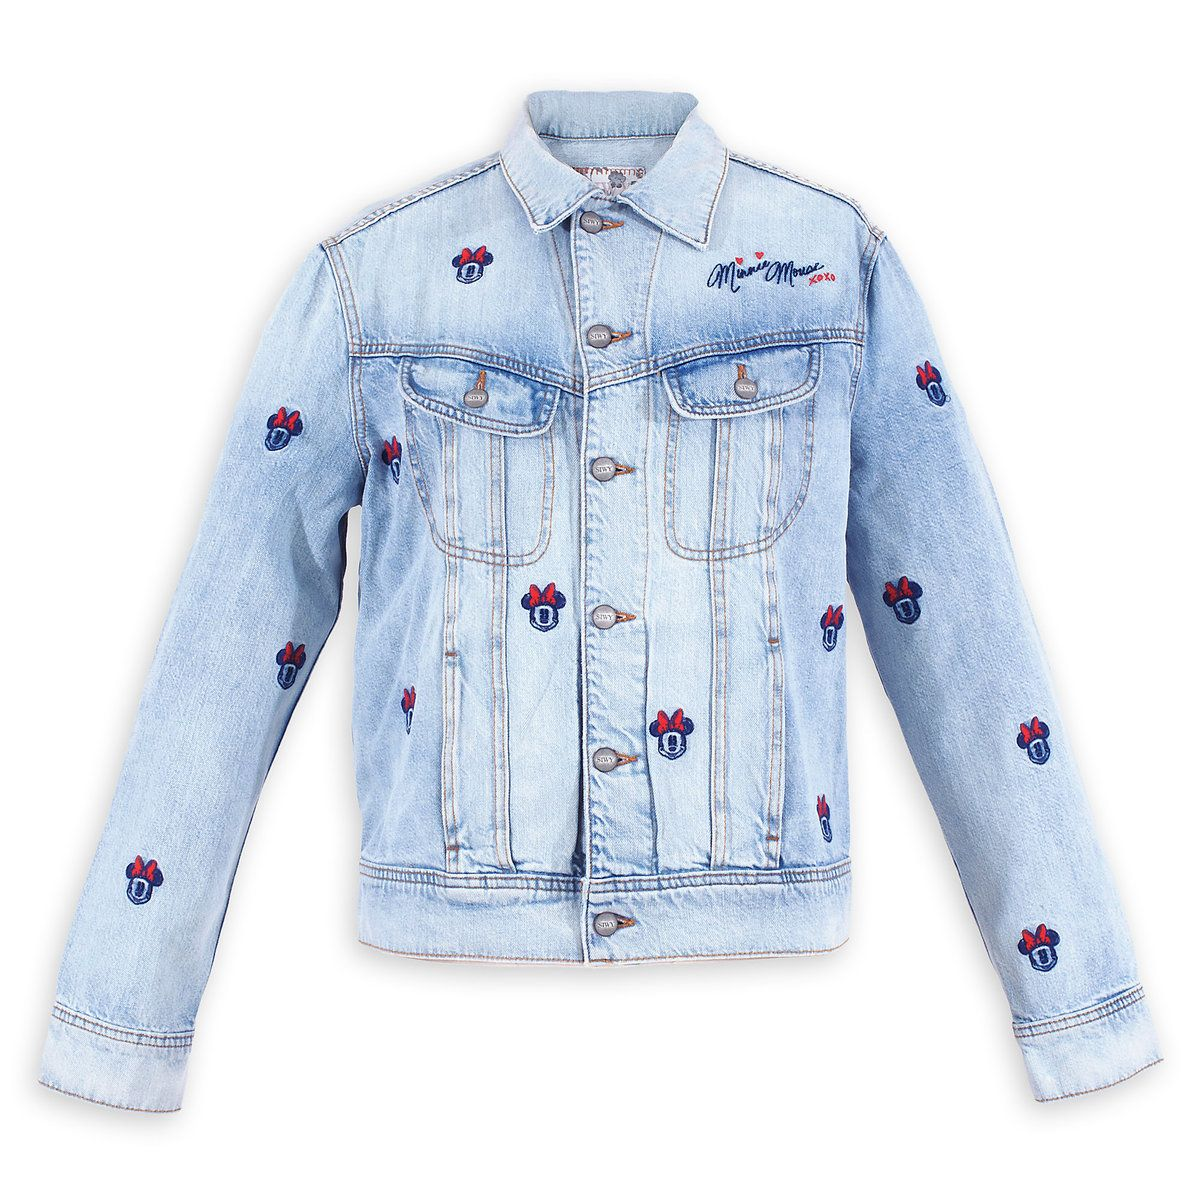 Minnie Mouse Embroidered Denim Jacket By Siwy Embroidered Denim Jacket Denim Accessories Denim Jacket [ 1200 x 1200 Pixel ]